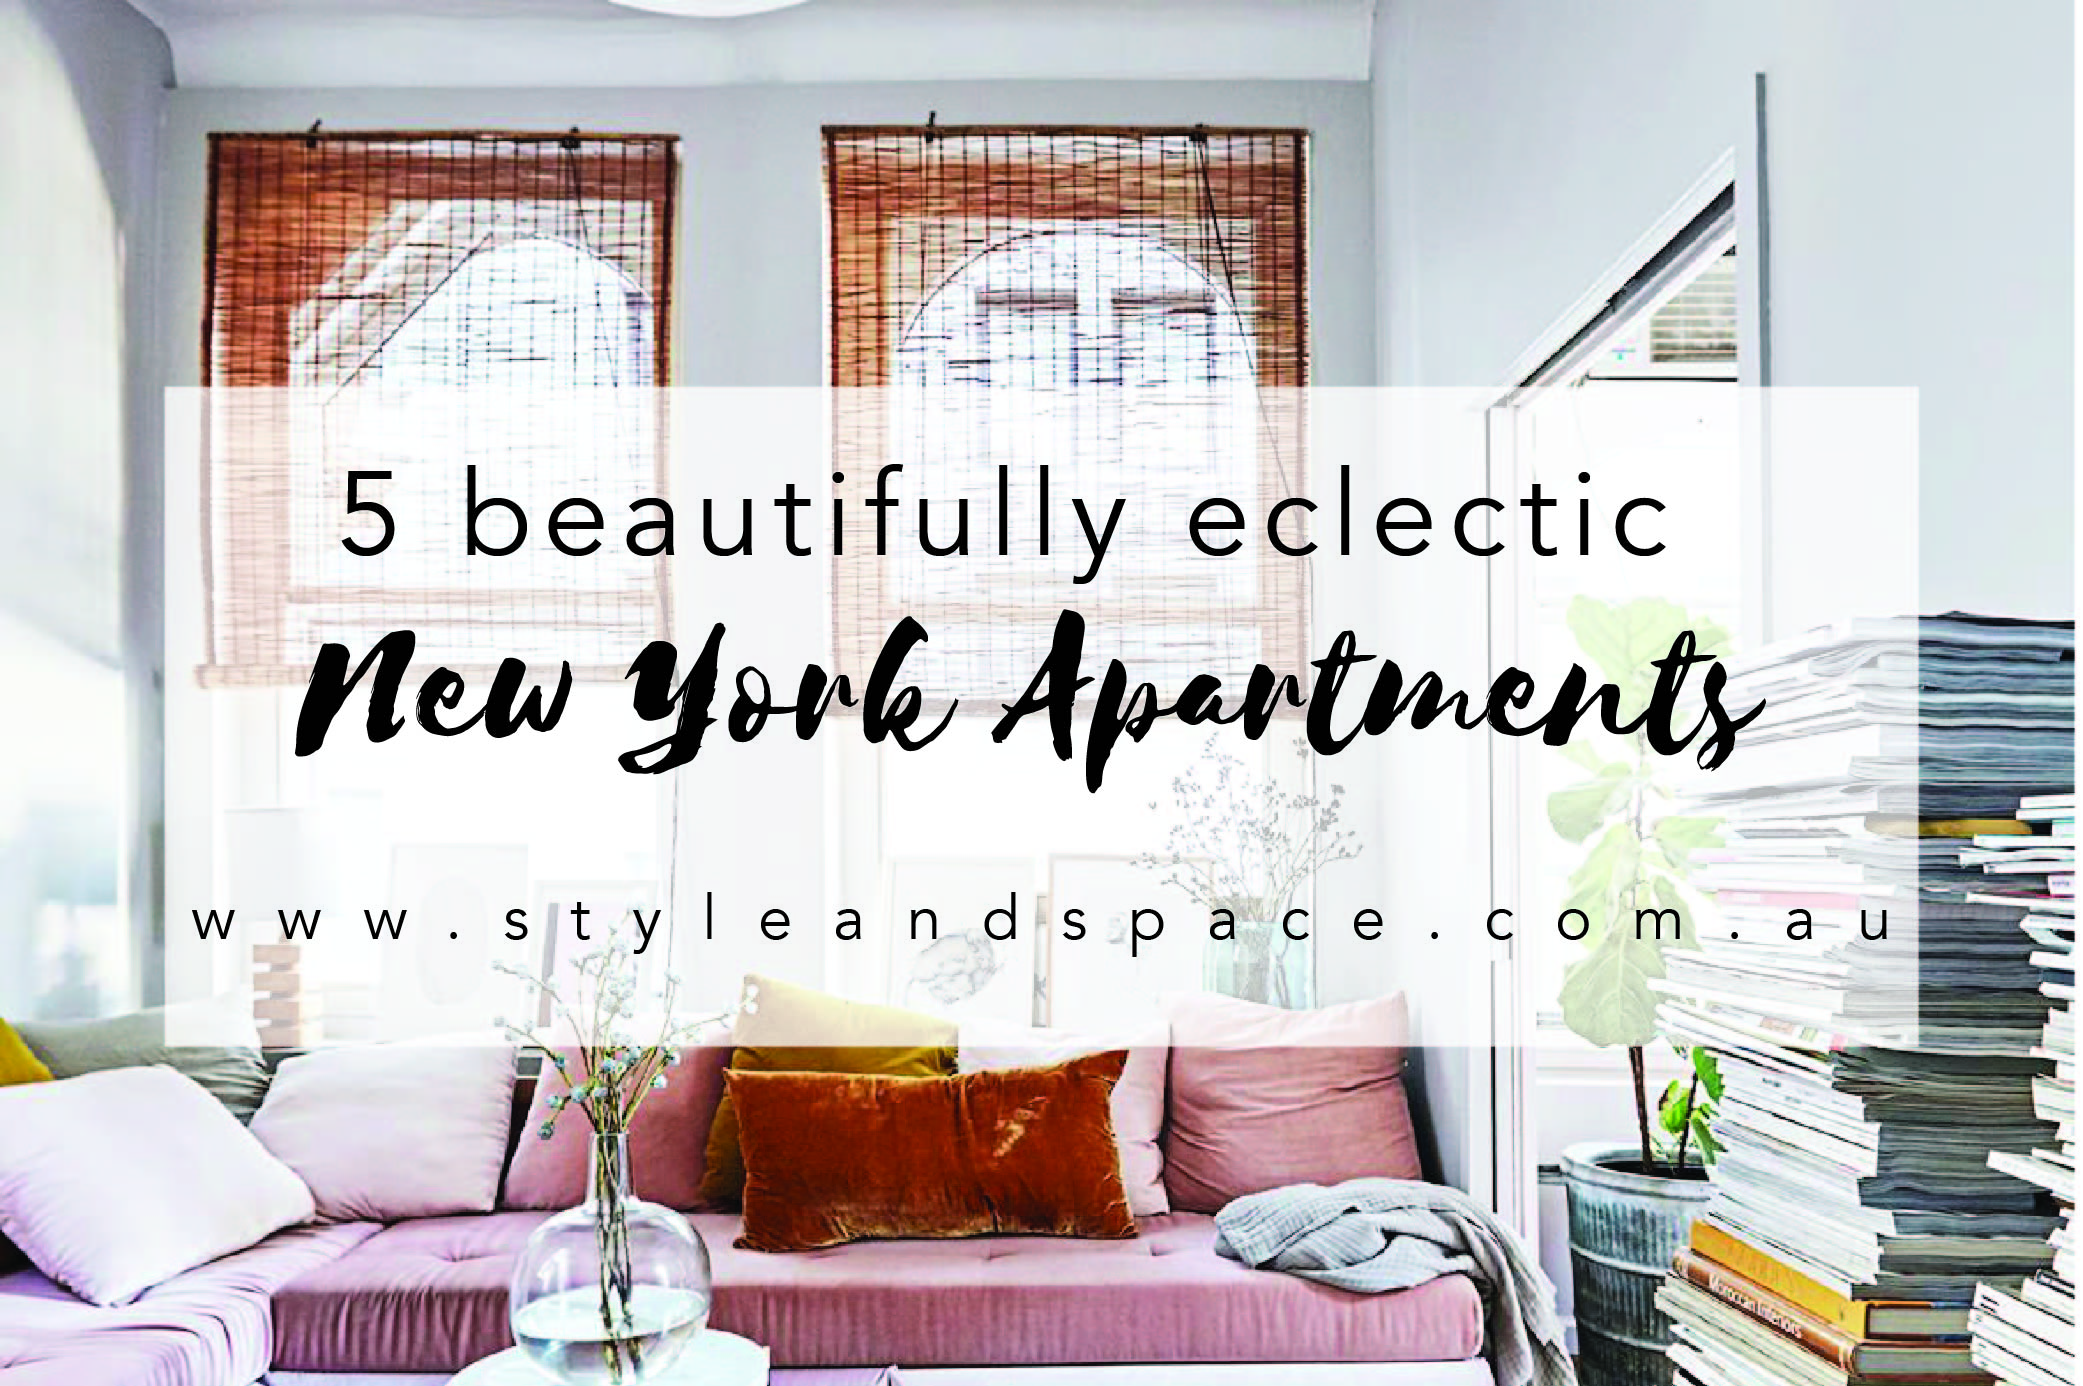 Styleandspace eclectic apartments